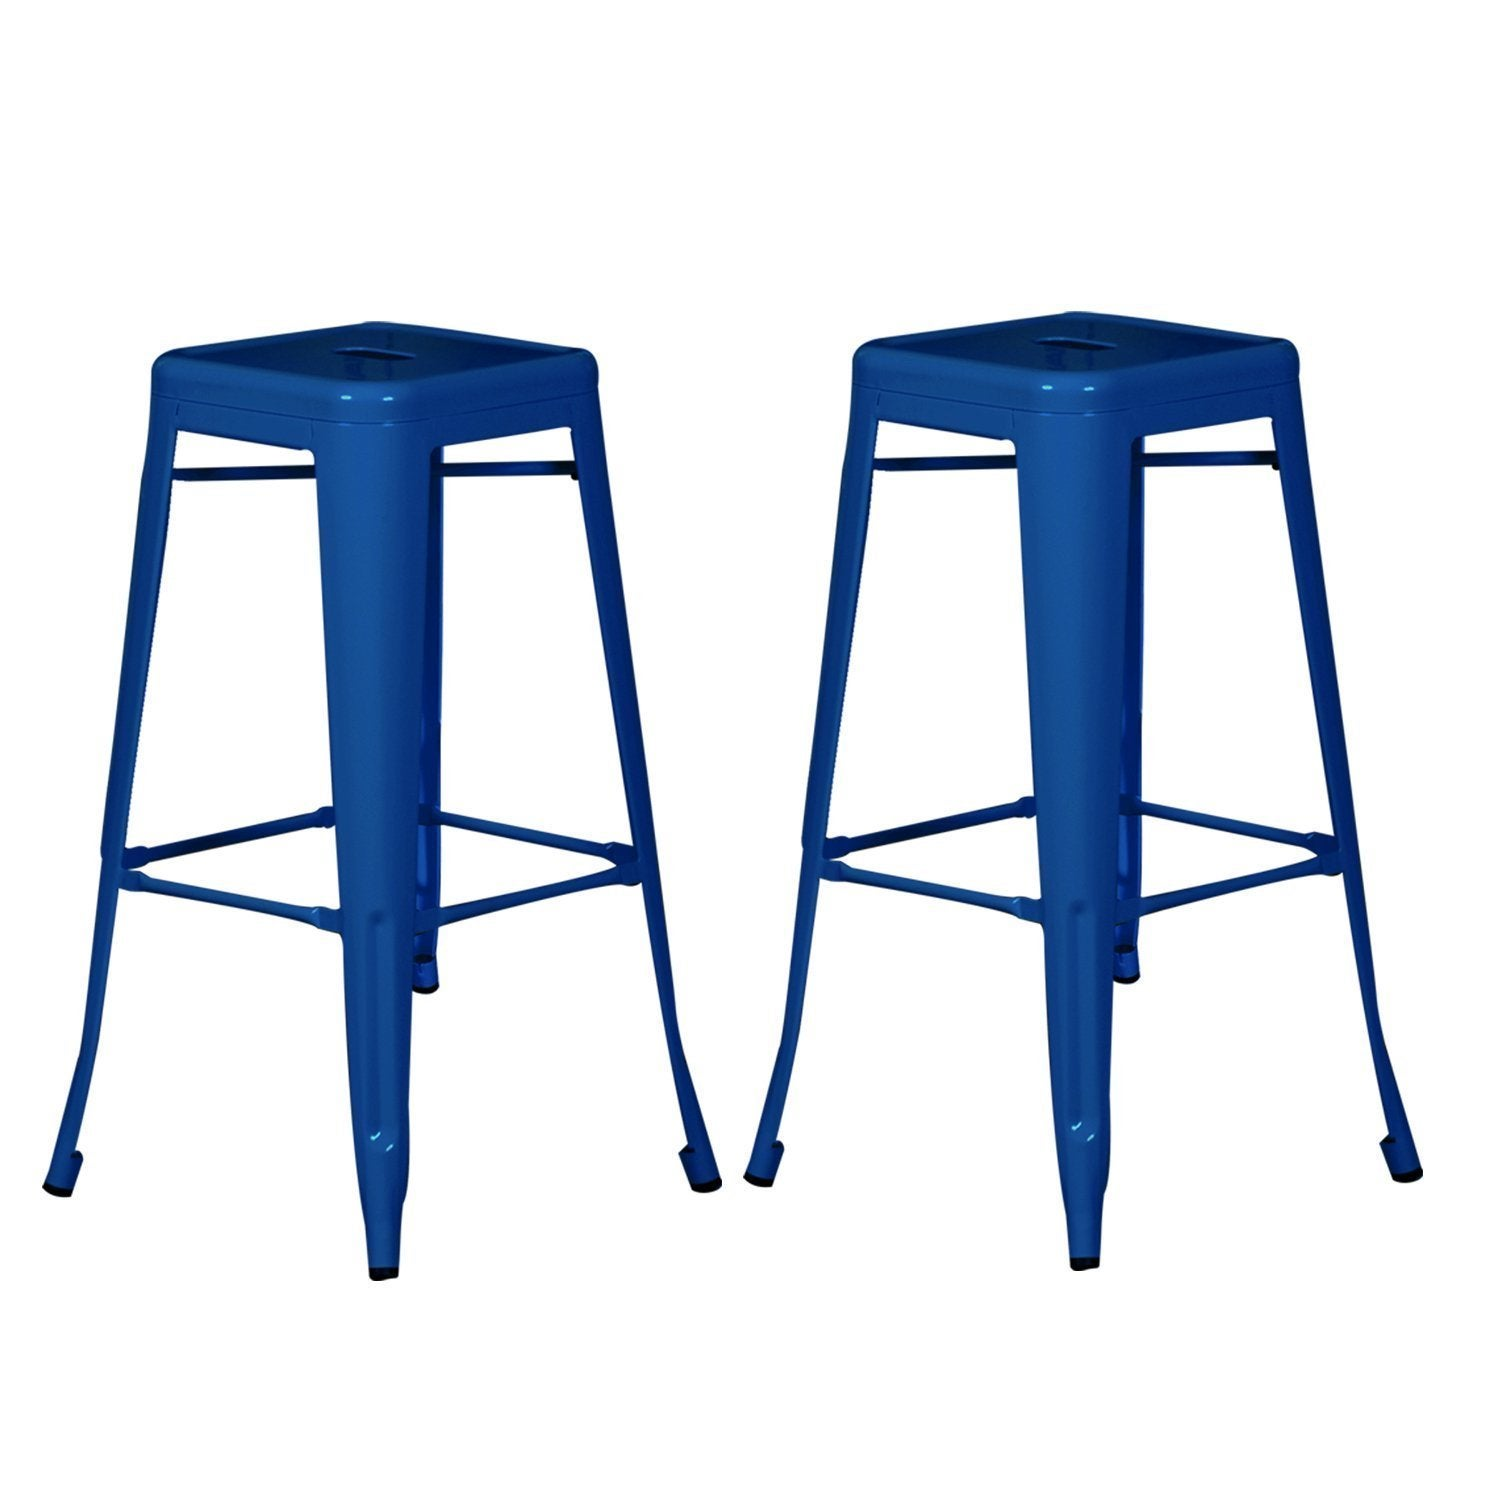 Adeco Sheet Iron Deep Blue Bar Stools (Set of 2)